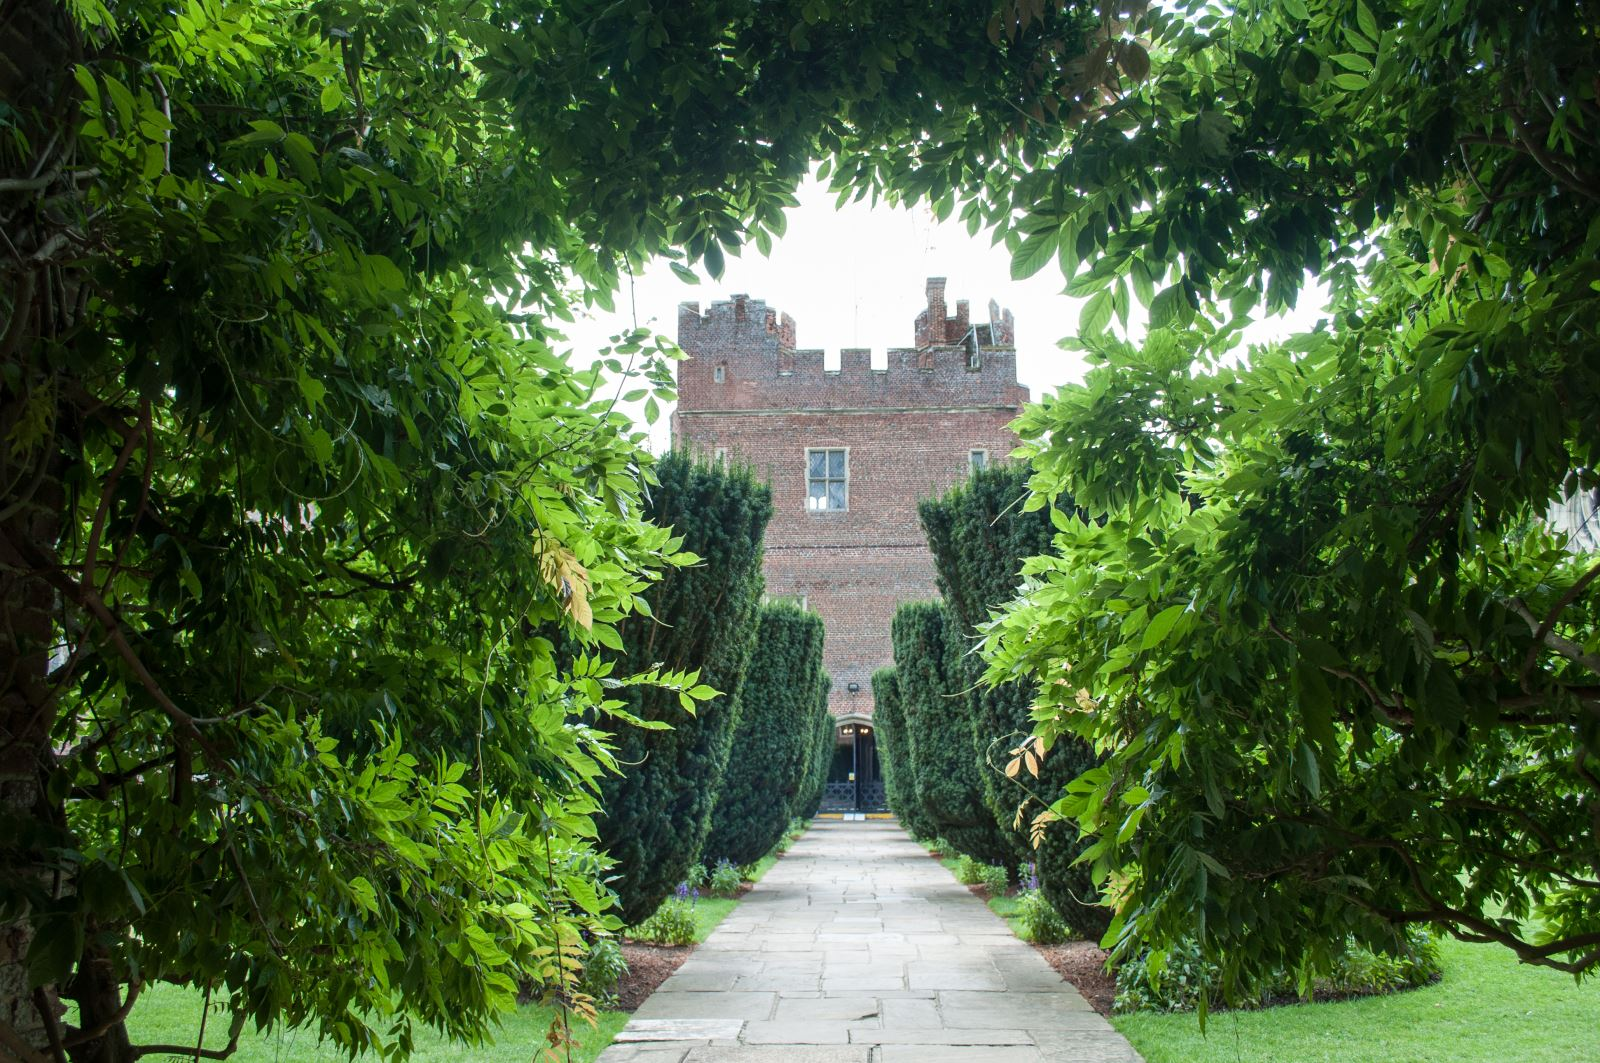 The gardens of Herstmonceux Castle by Suzanne Jones of Sussex Bloggers